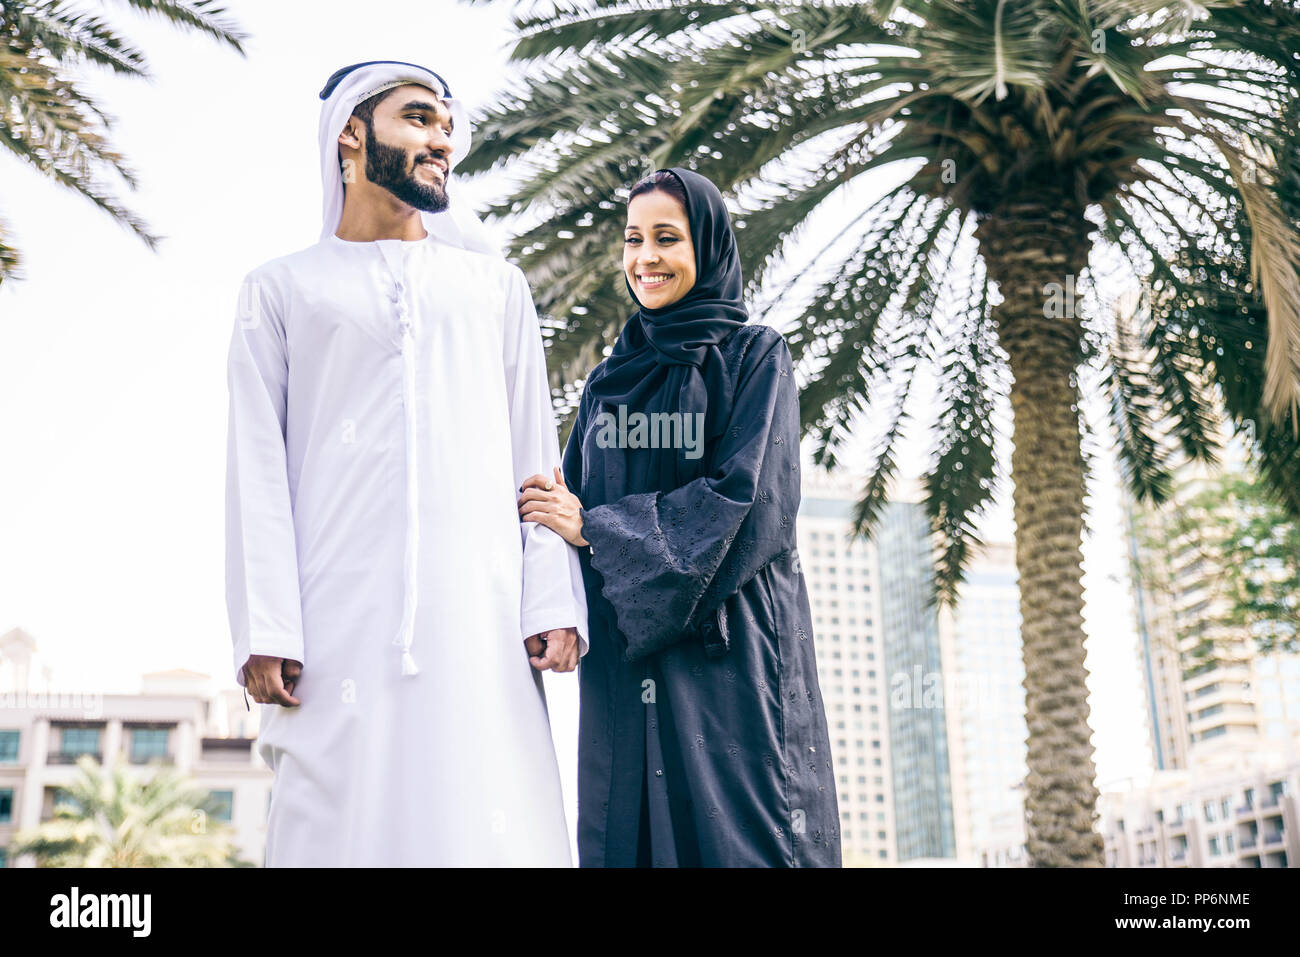 Arabic couple with traditional clothes dating outdoors Stock Photo